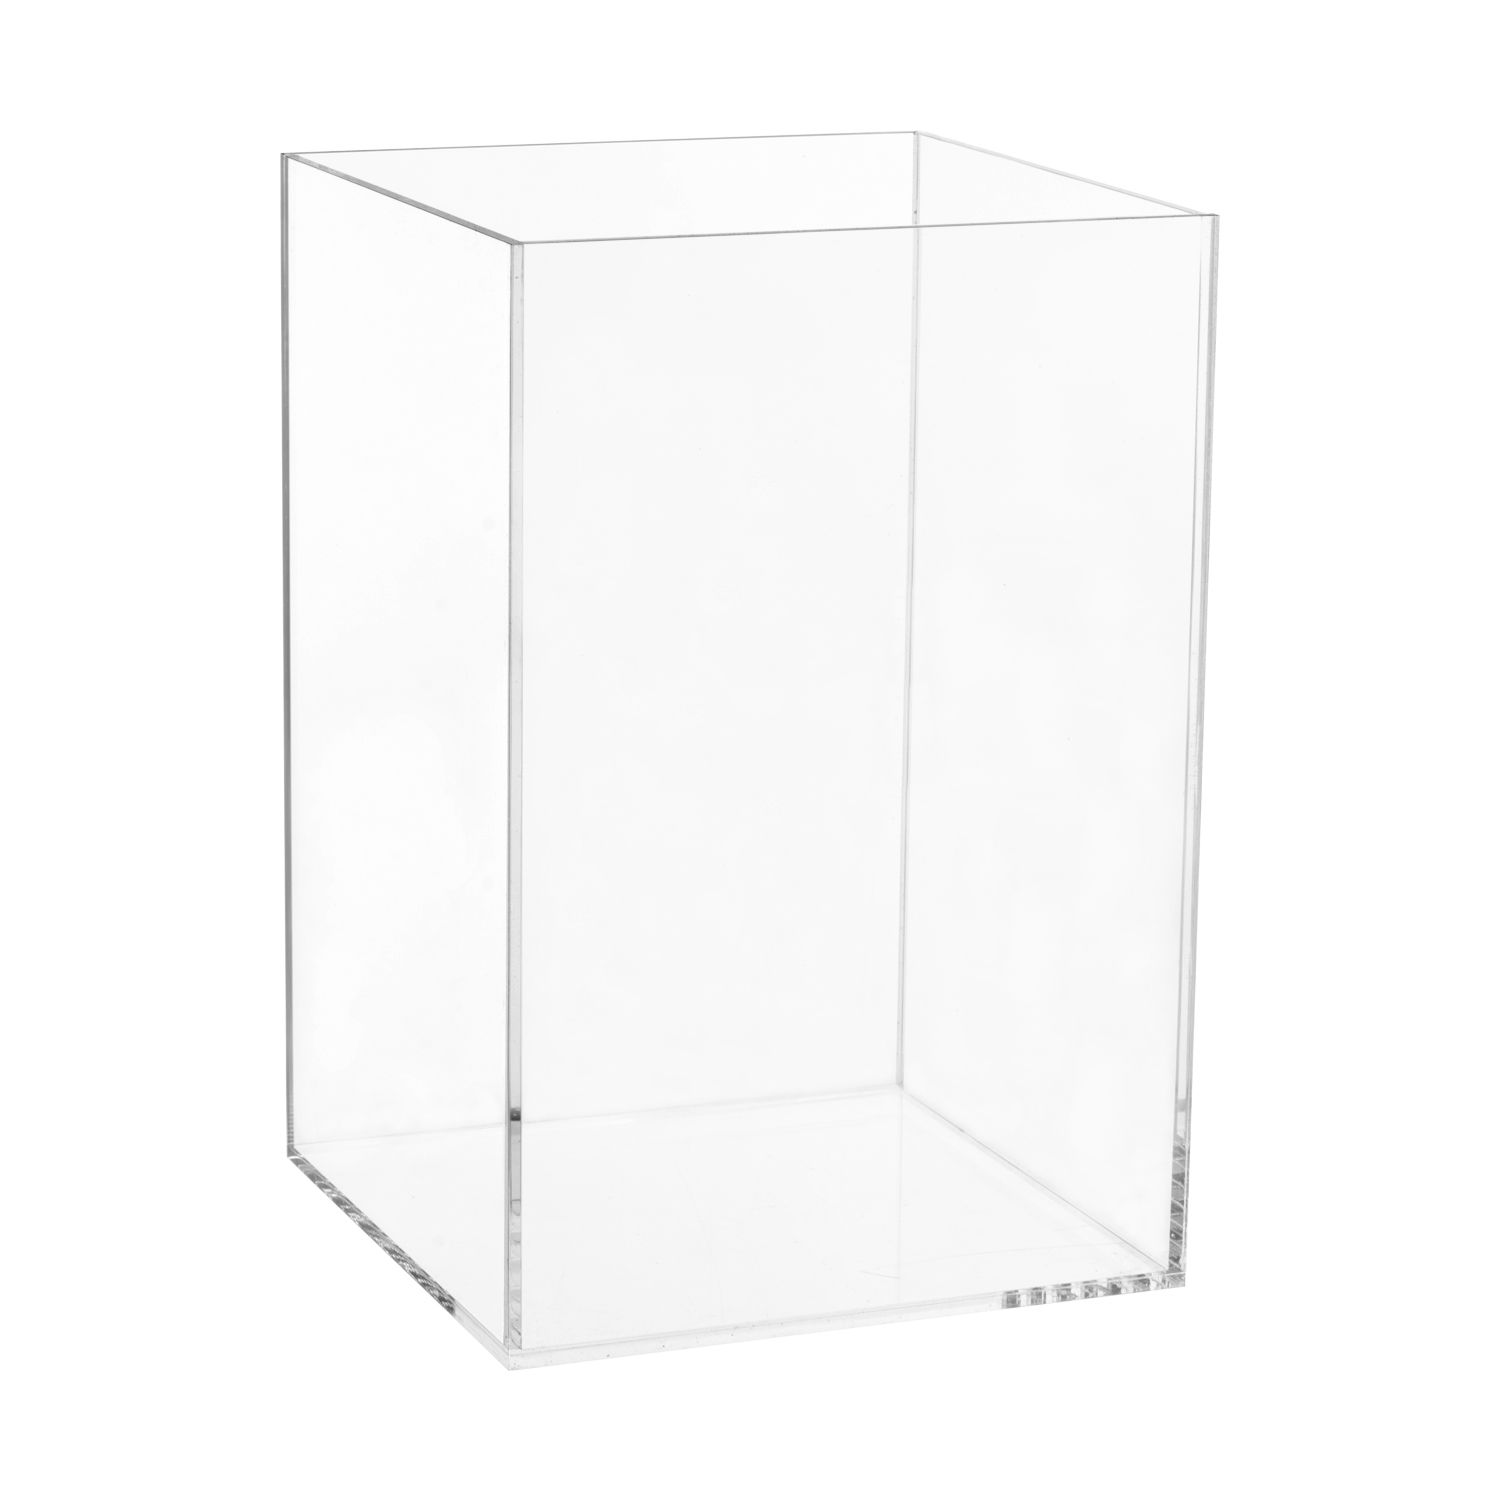 'Check out the deal on 1_b@b_1Buy Acrylic Displays | Shop Acrylic POP Displays Online' from the web at 'https://i.pinimg.com/originals/f7/21/9d/f7219d8221b7691eea0deafbb202e54f.jpg'